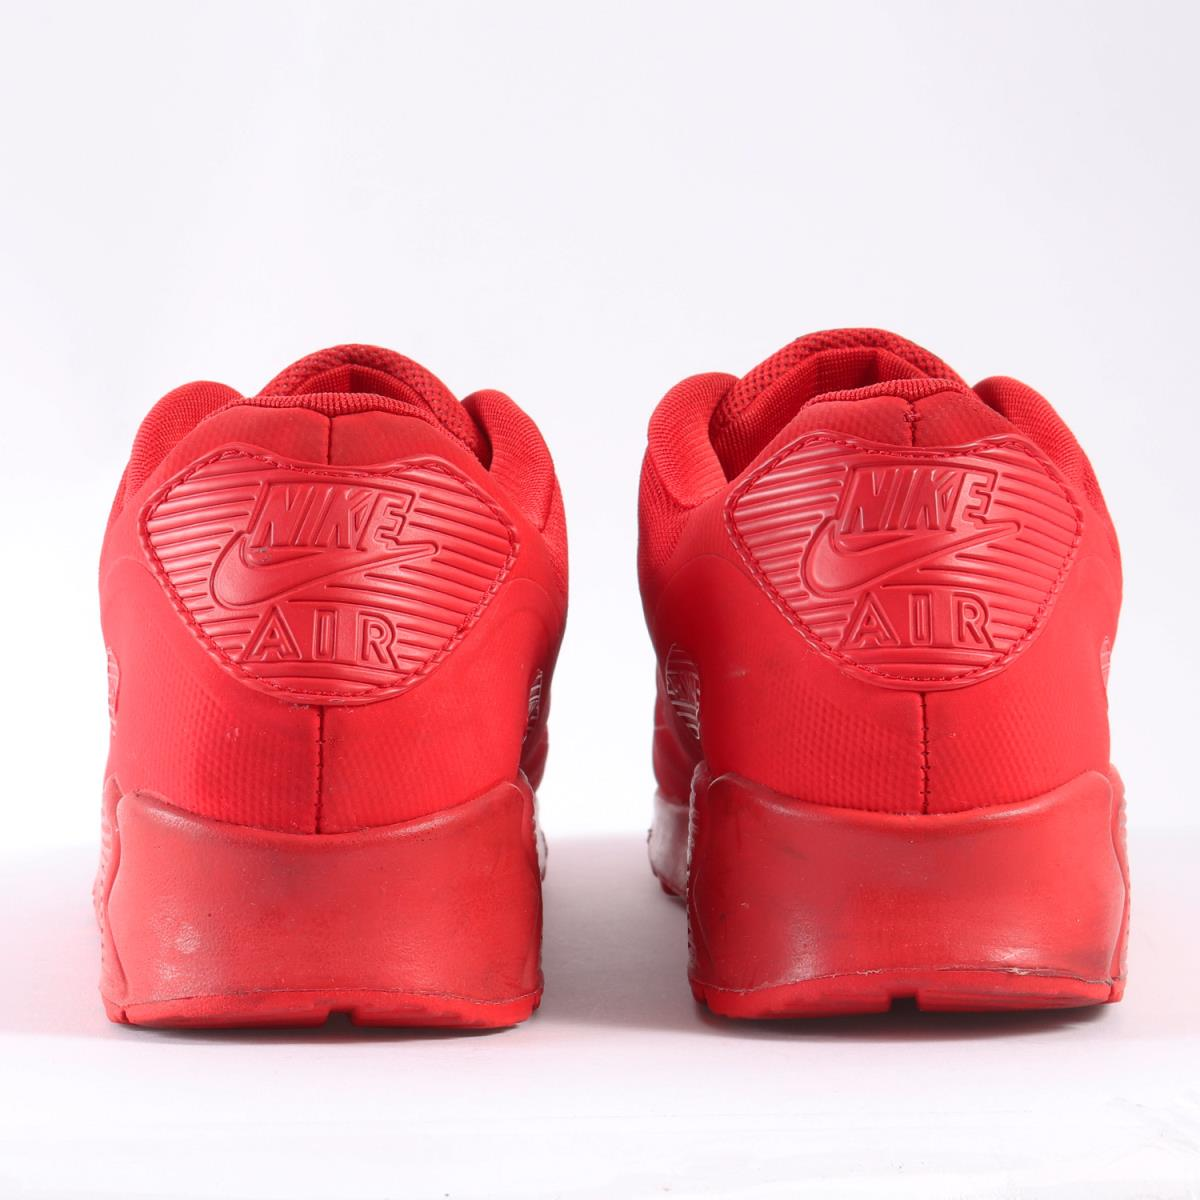 NIKE (Nike) AIR MAX 90 HYP QS INDEPENDENCE DAY (613,841 660) sports red US10.5(28.5cm)